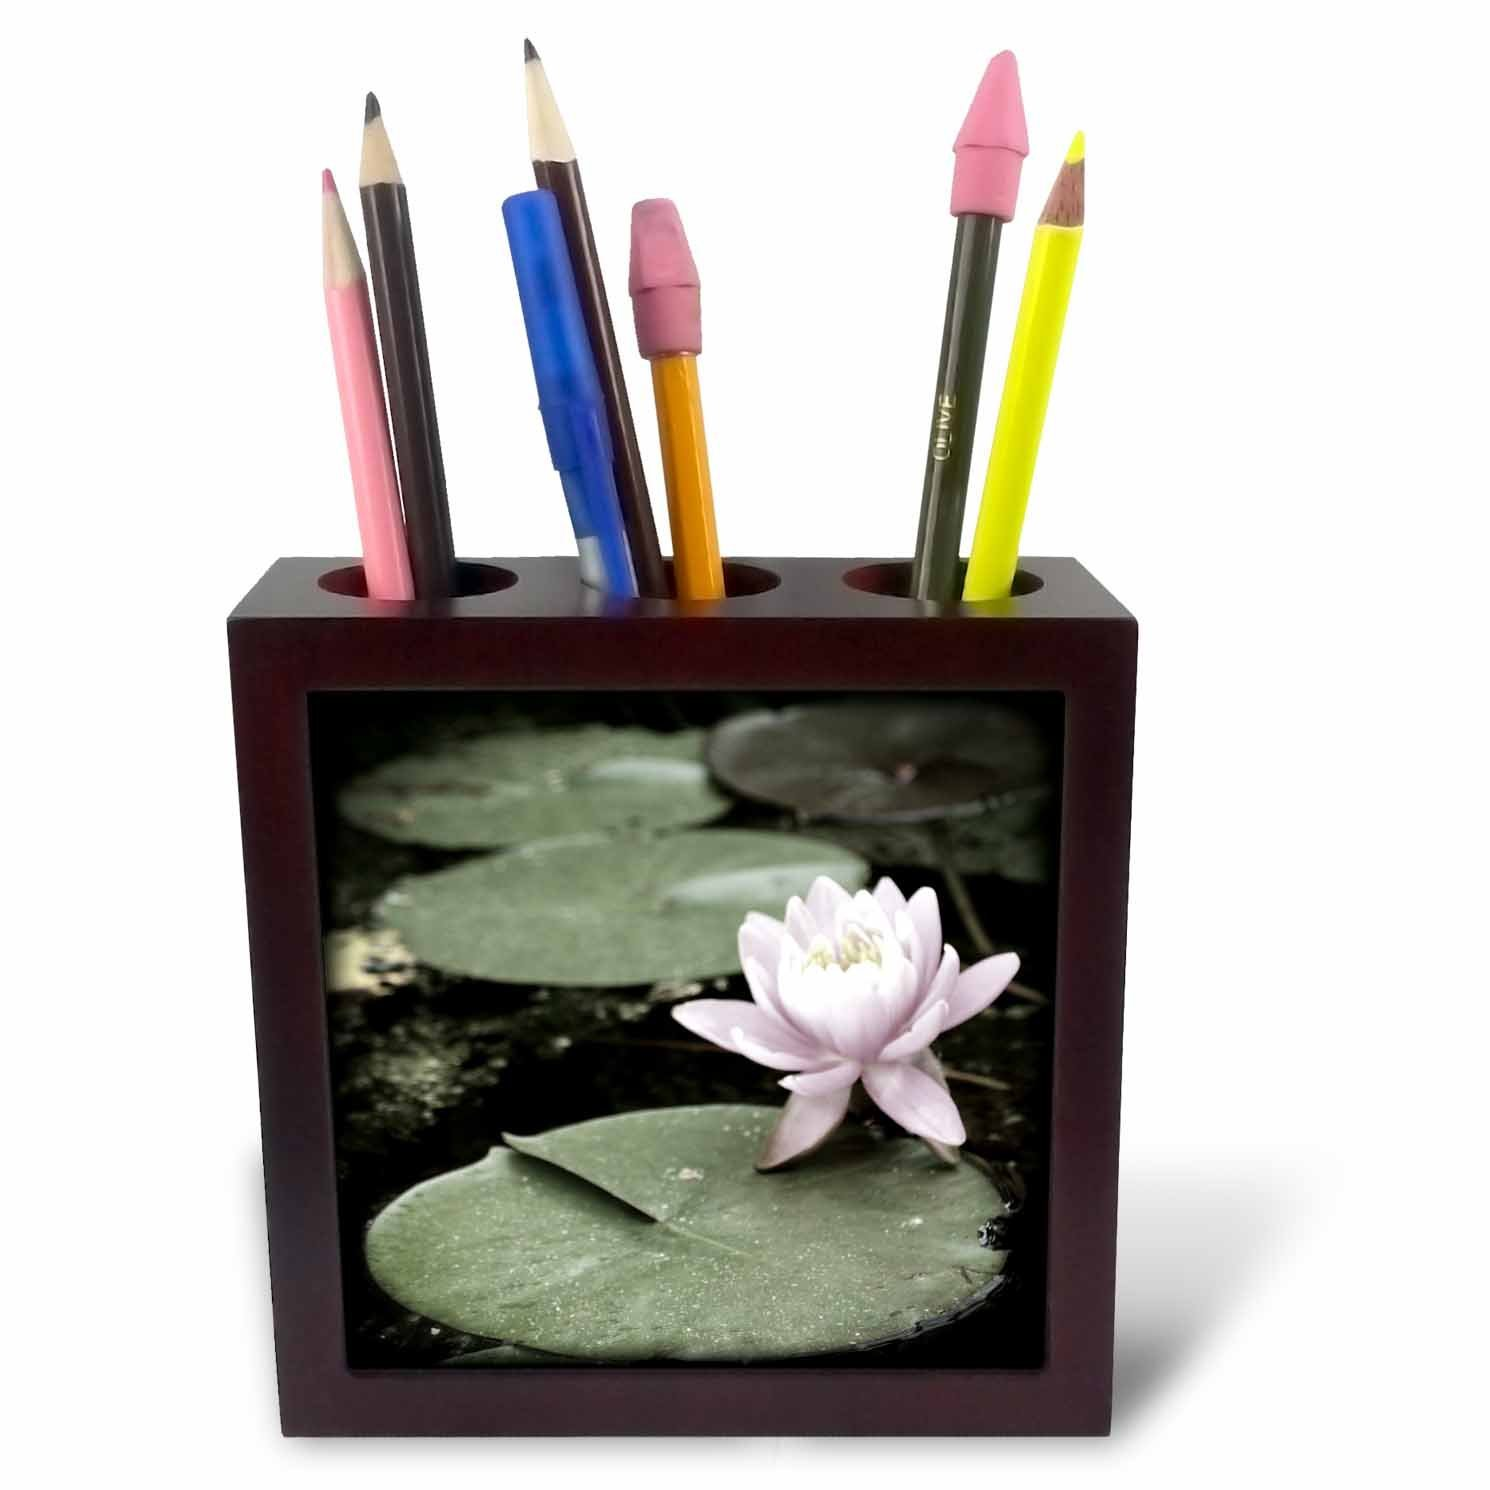 Cheap pink lily flower find pink lily flower deals on line at get quotations 3drose whiteoaks photography and artwork lily flowers pink water lily flower is a beautiful izmirmasajfo